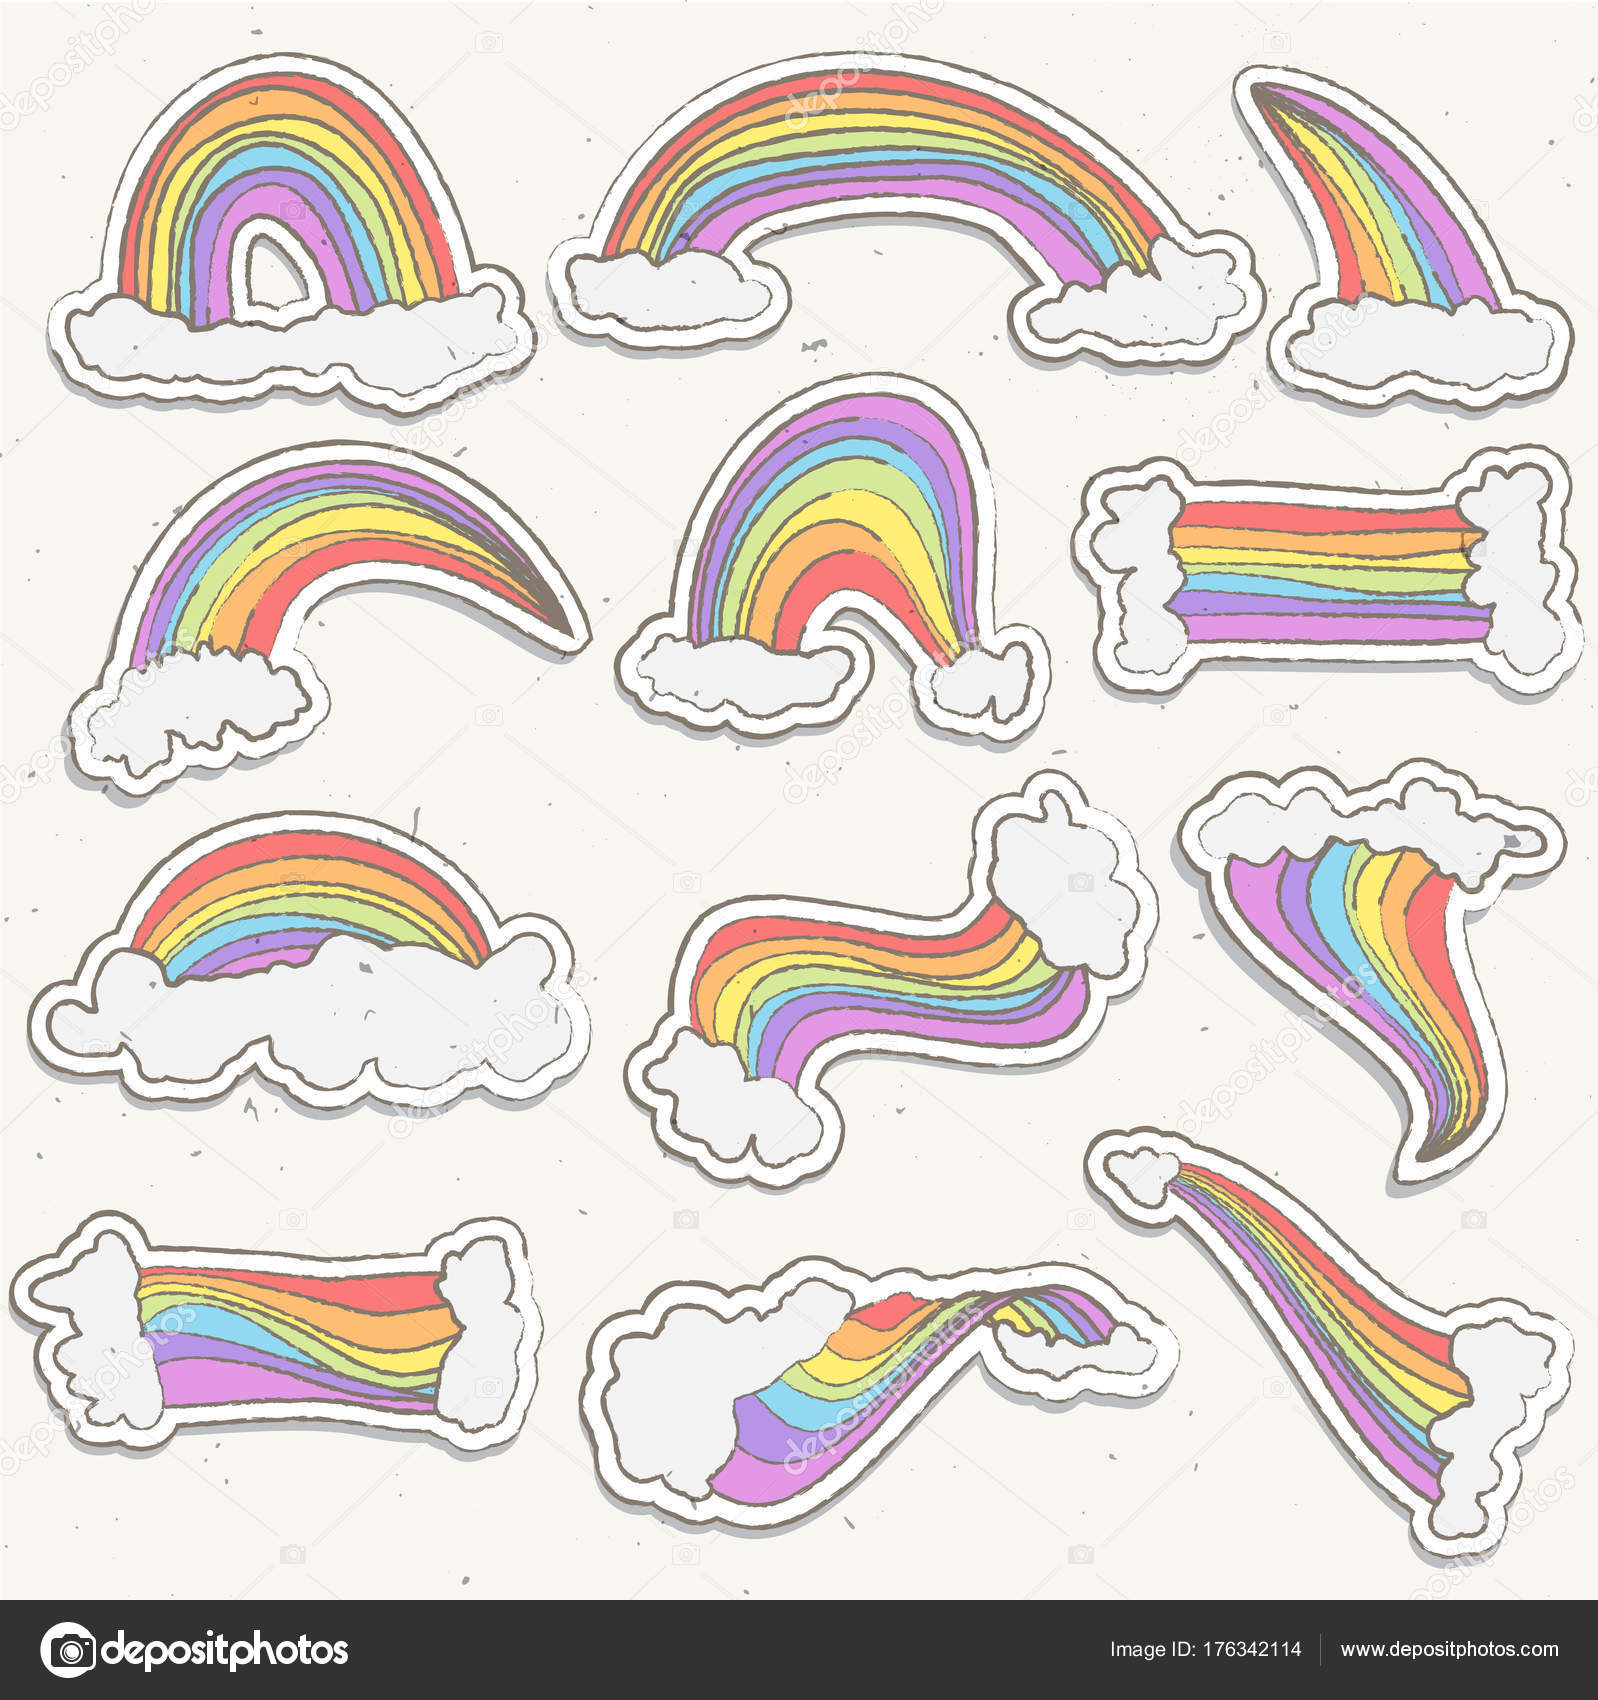 Cute rainbow sticker vector set. Rainbow cartoon sticker illustration with  clouds in sky. Hand